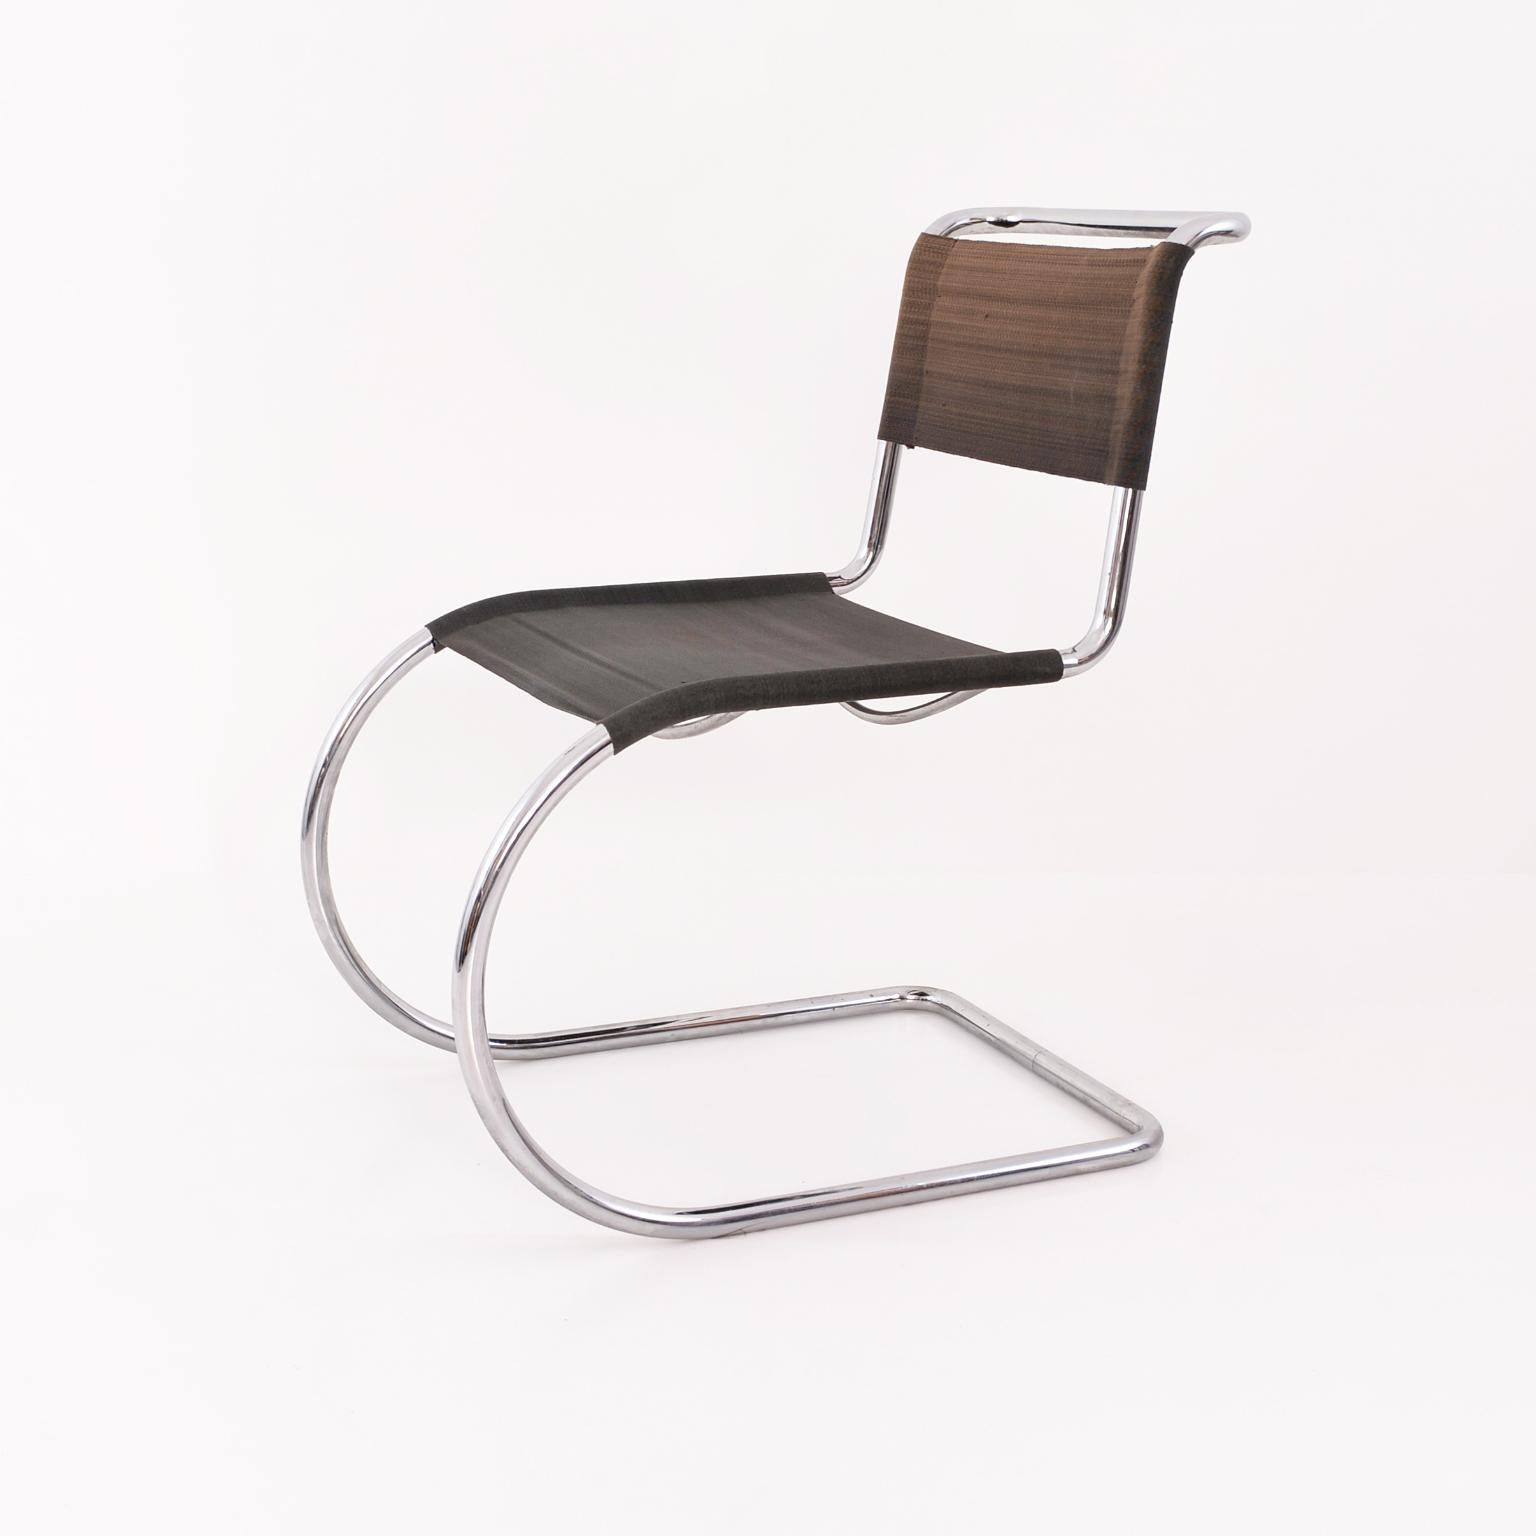 Ludwig Mies Van Der Rohe Weißenhof Mr 10 Mr 533 Chairs Manufactured By Thonet For Sale At 1stdibs